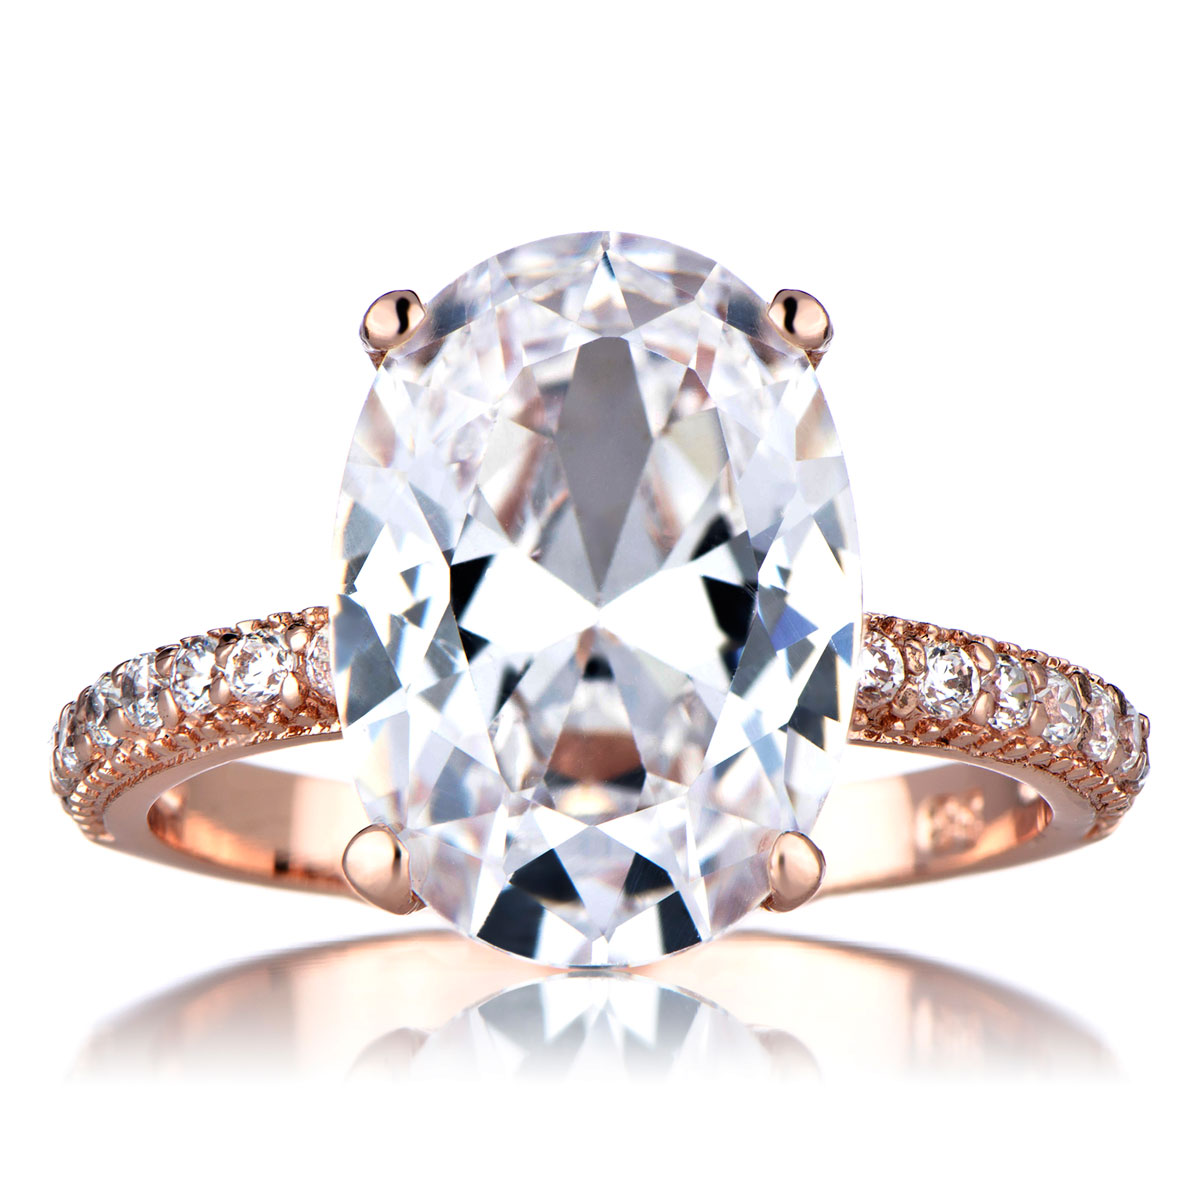 petite solitaire engagement ring in 14k rose gold rose gold wedding rings Petite Solitaire Engagement Ring in 14k Rose Gold